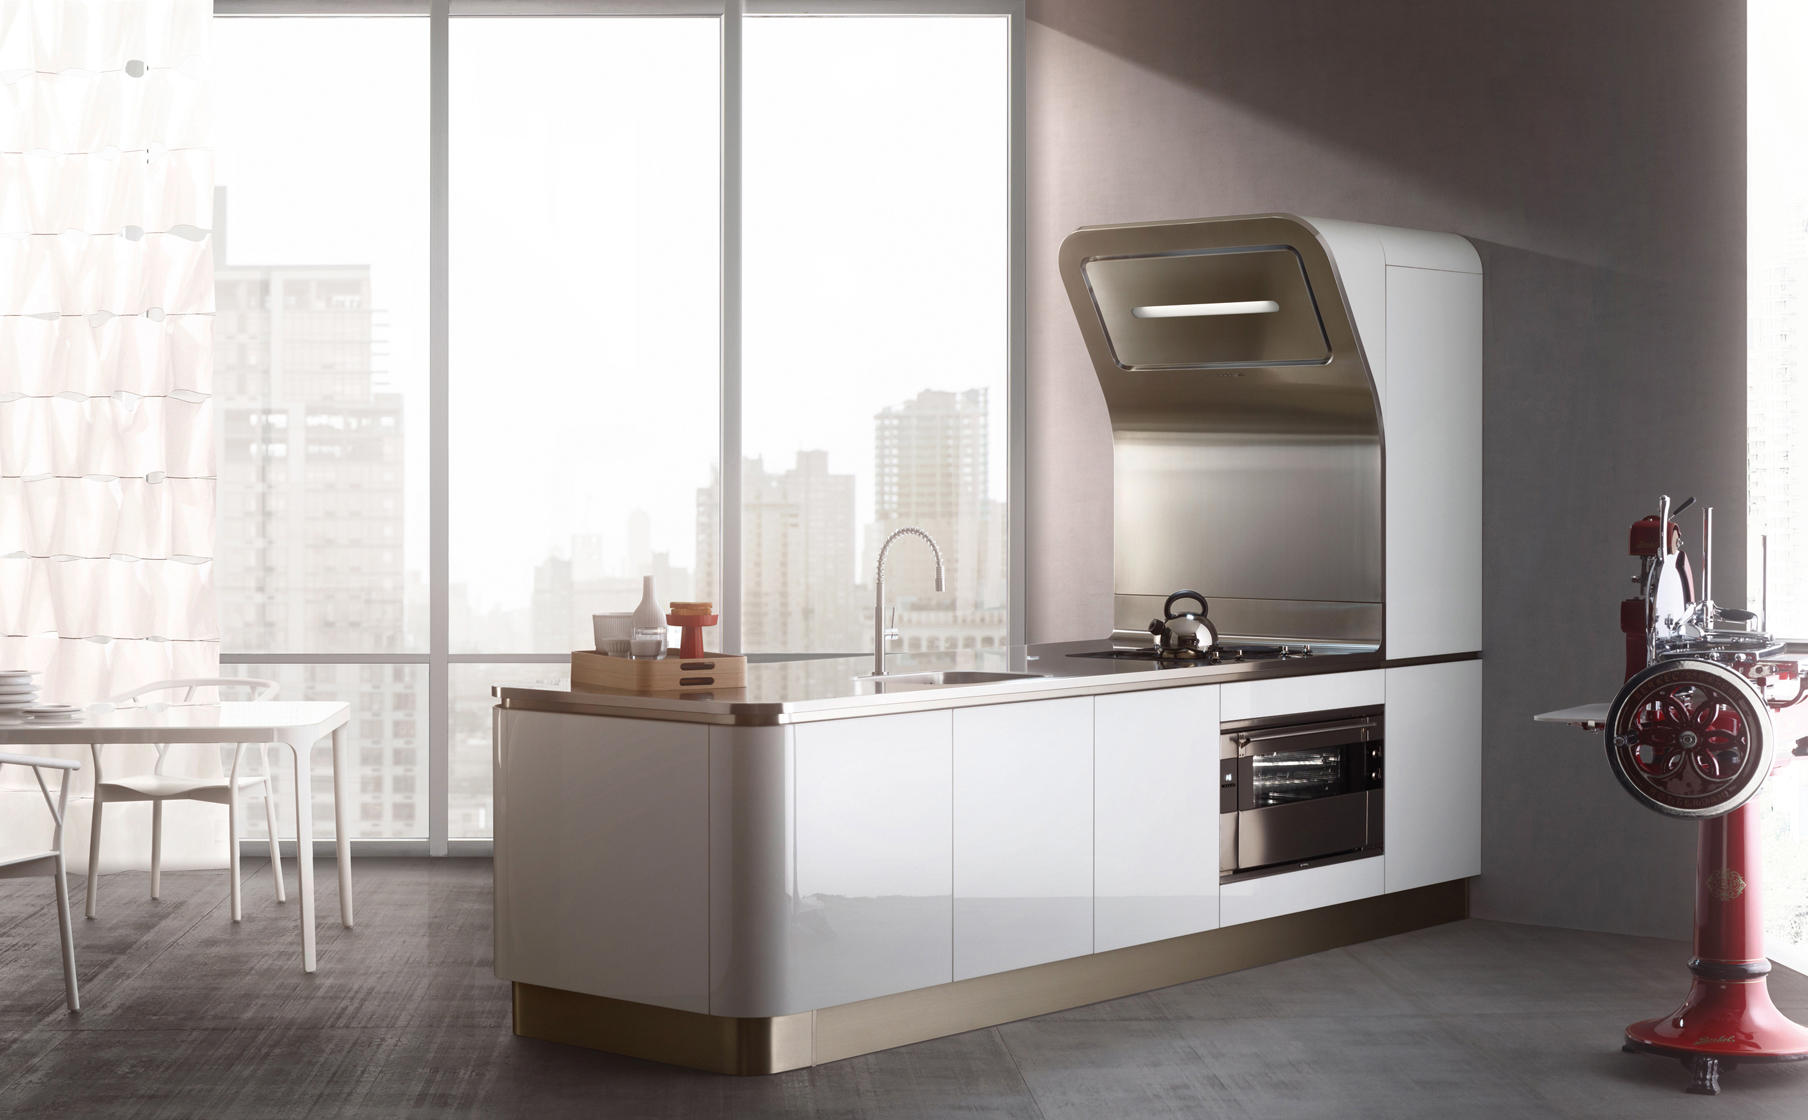 LIQUIDA FLIPPER - Compact kitchens from Veneta Cucine | Architonic